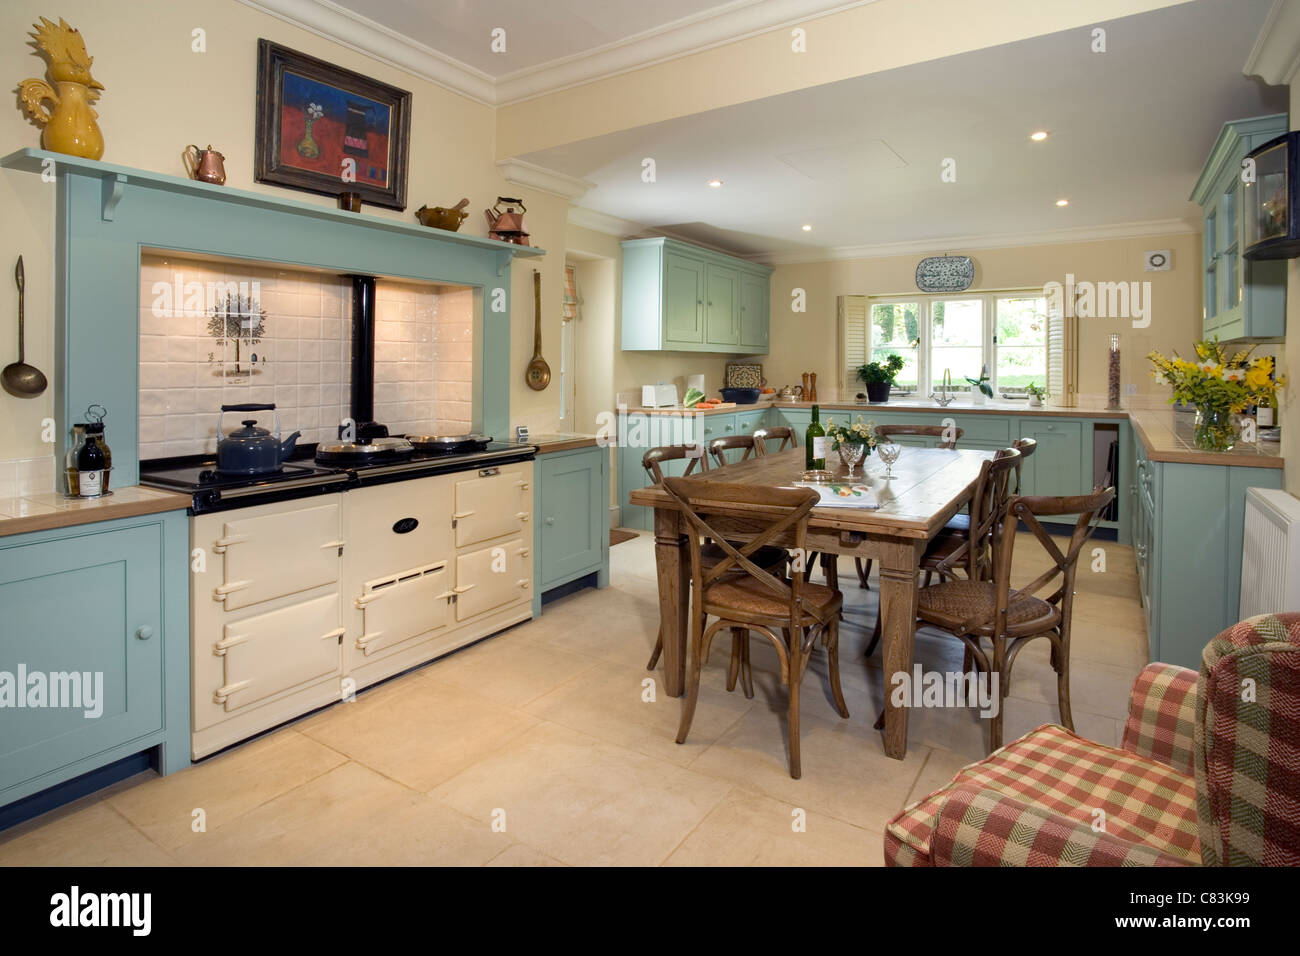 farm style kitchen low cost cabinets contemporary farmhouse with aga cooker stock